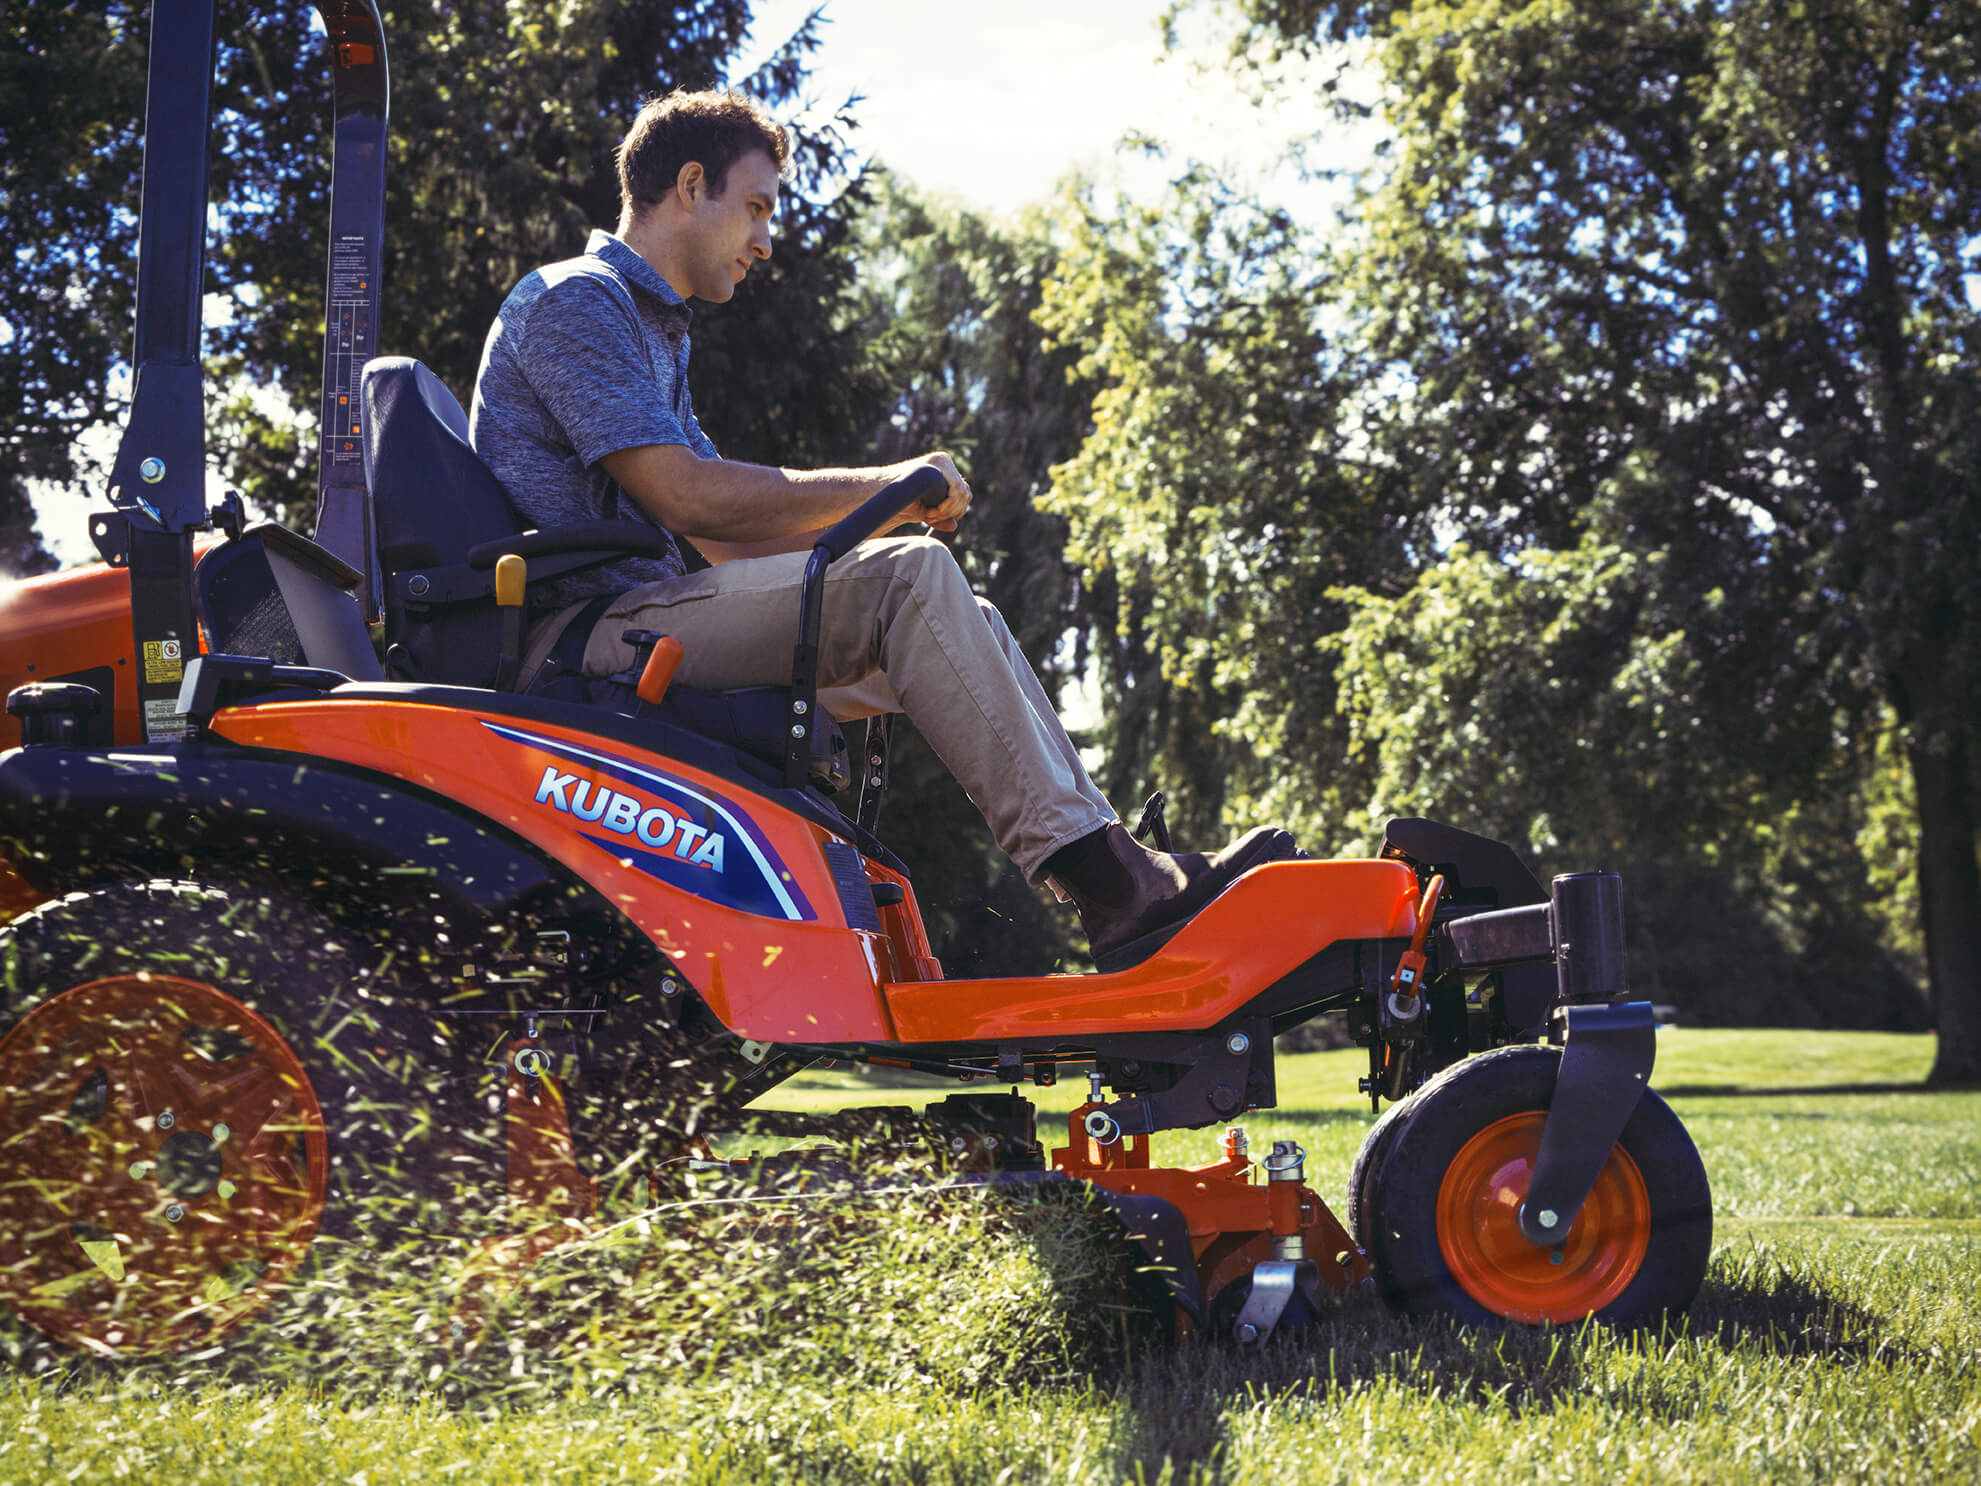 Unified Content Toronto, Unified Content, Max Rosenstein, Kubota, Tractor, Kubota Tractors, tractor and heavy equipment manufacturer, Kubota Product, Automobile, Automobile photography, product photography, farmers, real people, real farmers, farm ontario, ontario farming,